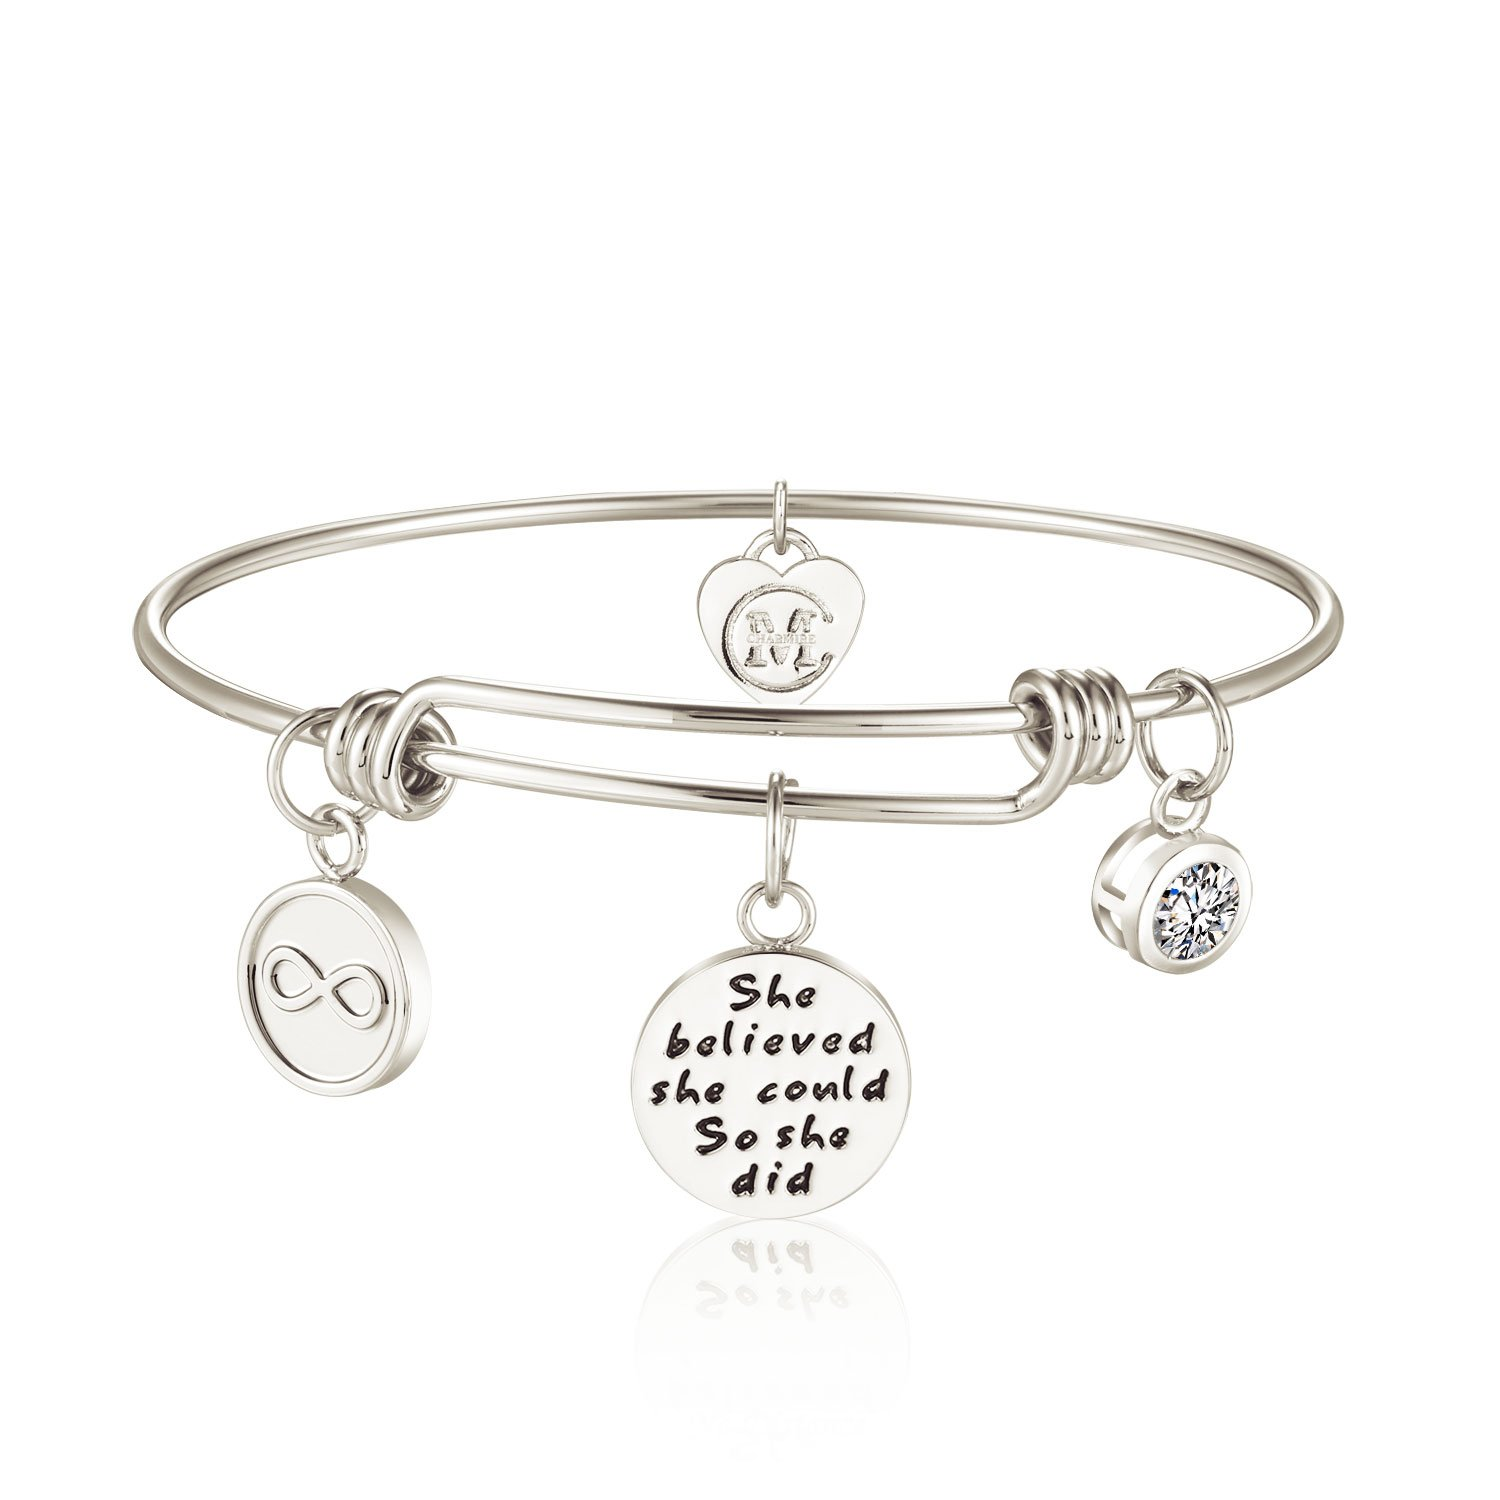 Women's Charm Wire Bangle She Believed She Could So She Did Inspirational Jewelry Girls Expandable Bracelets Christmas Xmas Gifts Charmire CMB002RG